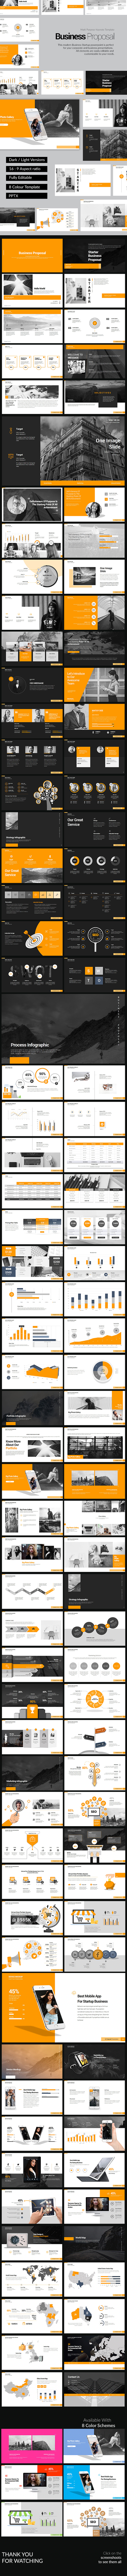 Business Proposal Keynote Templates - Keynote Templates Presentation Templates